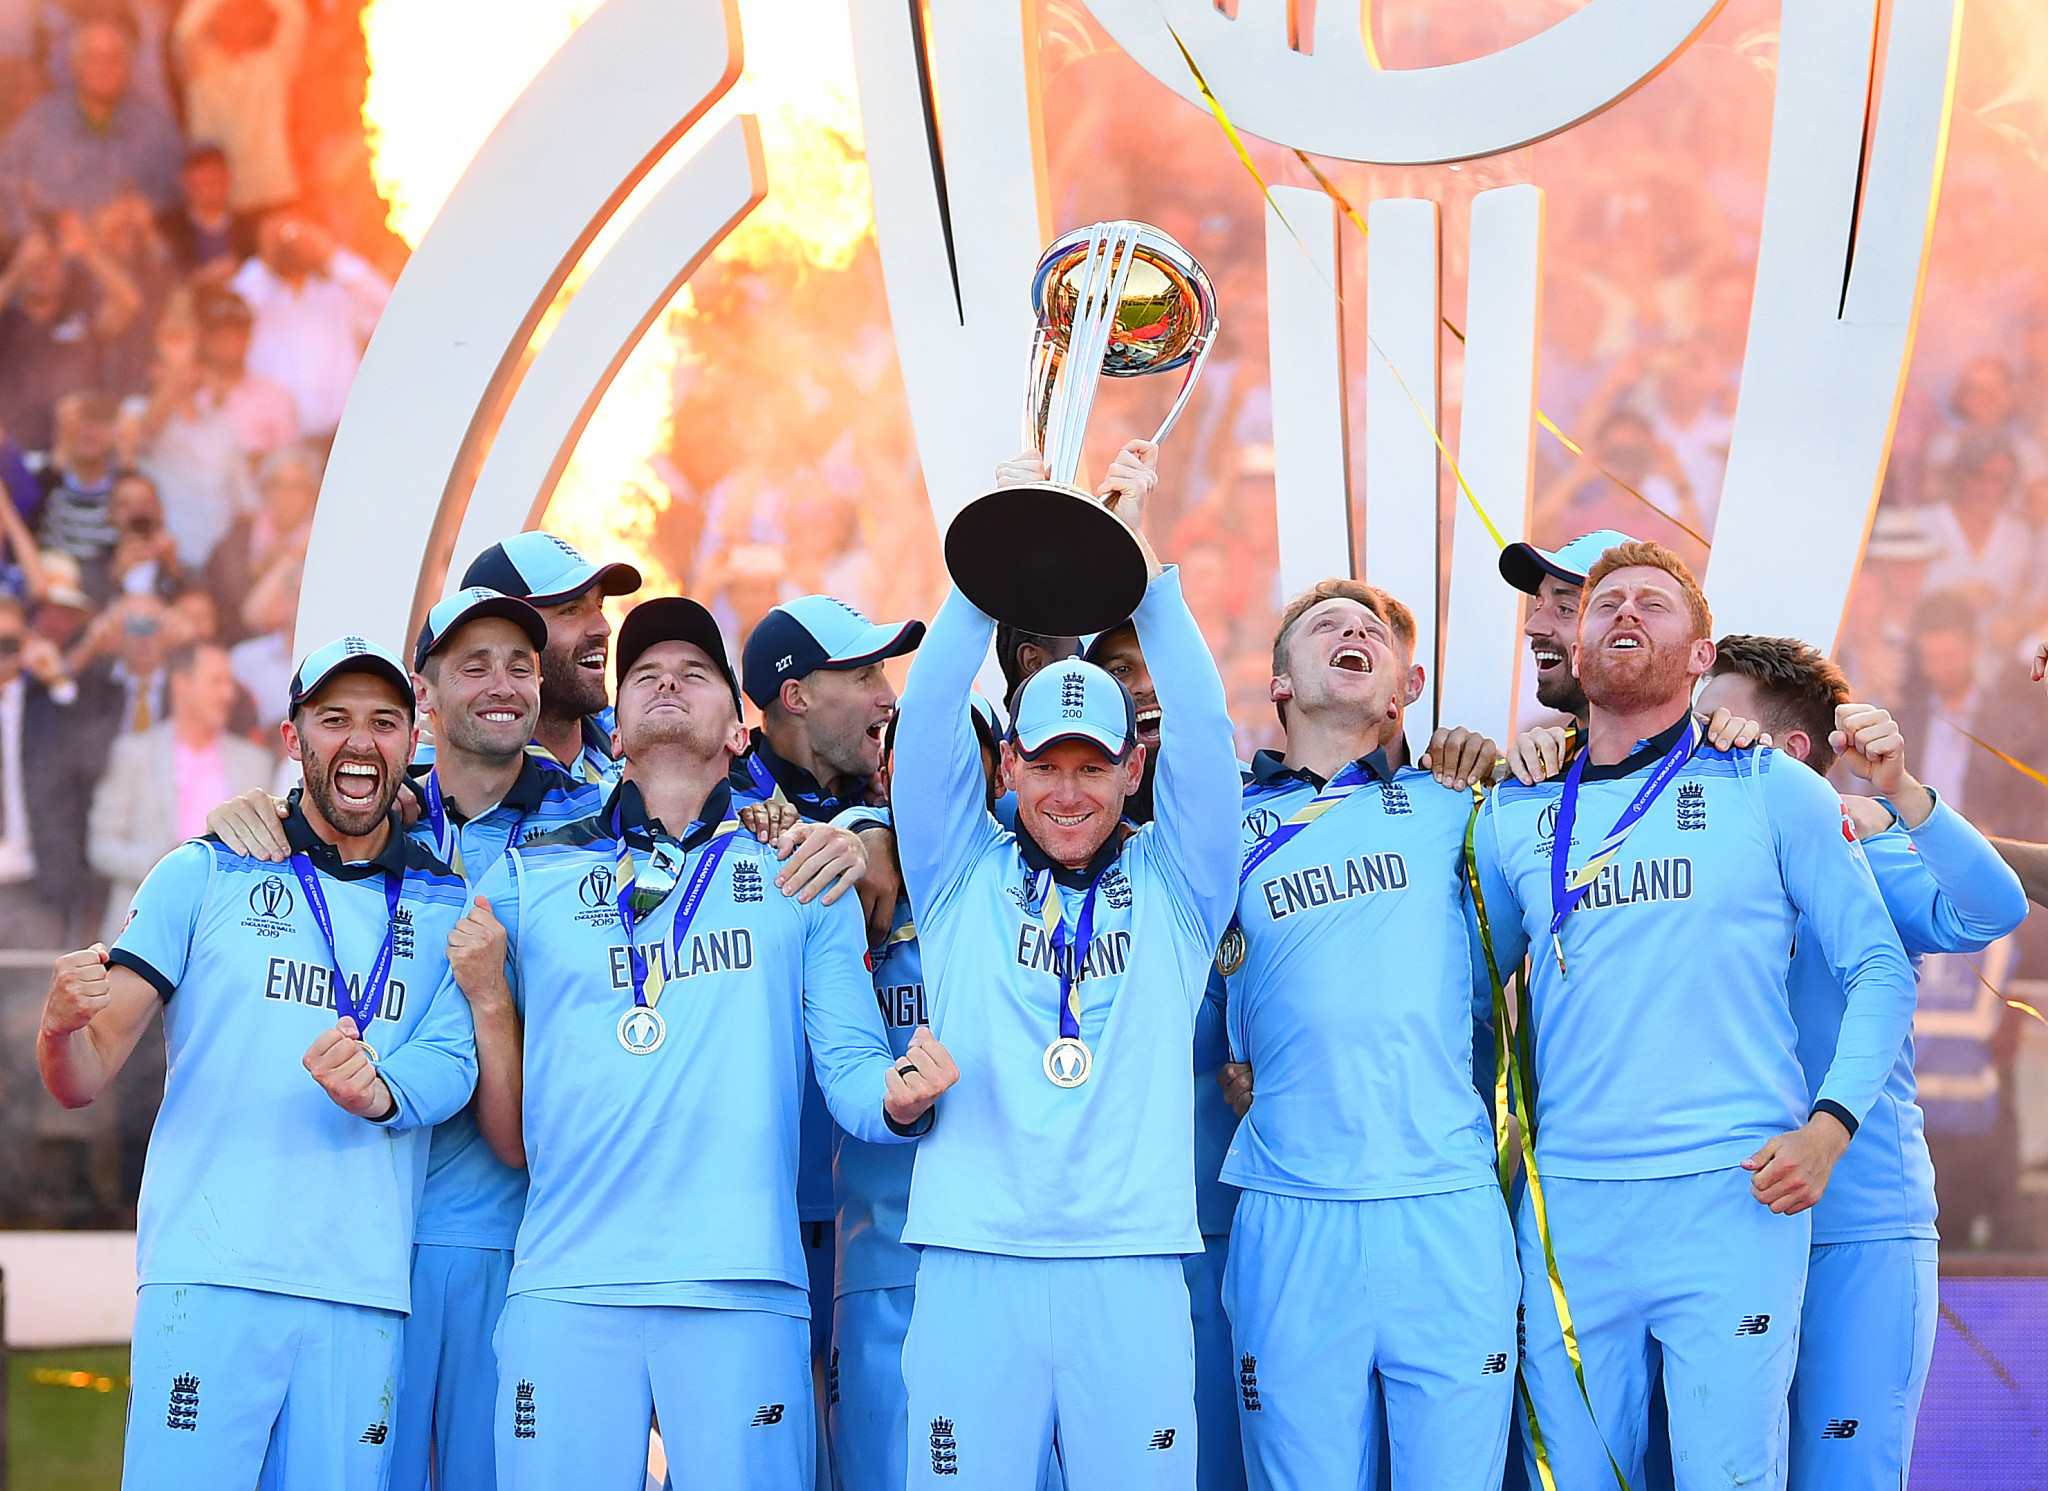 ICC announces 2019 Men's World Cup gave £350 million boost to UK economy